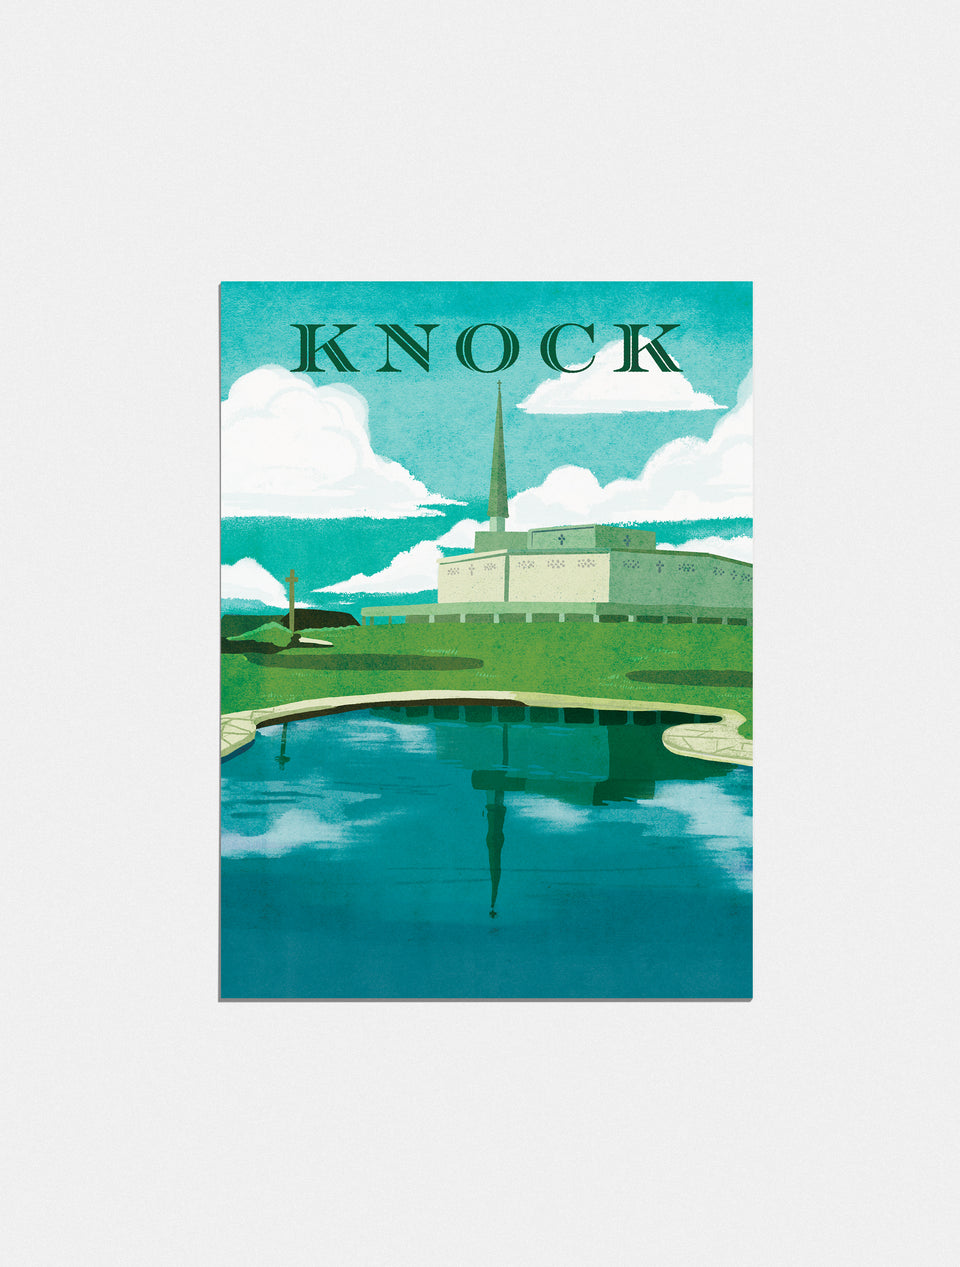 Premium Poster: Pilgrimage to Knock, 18x24